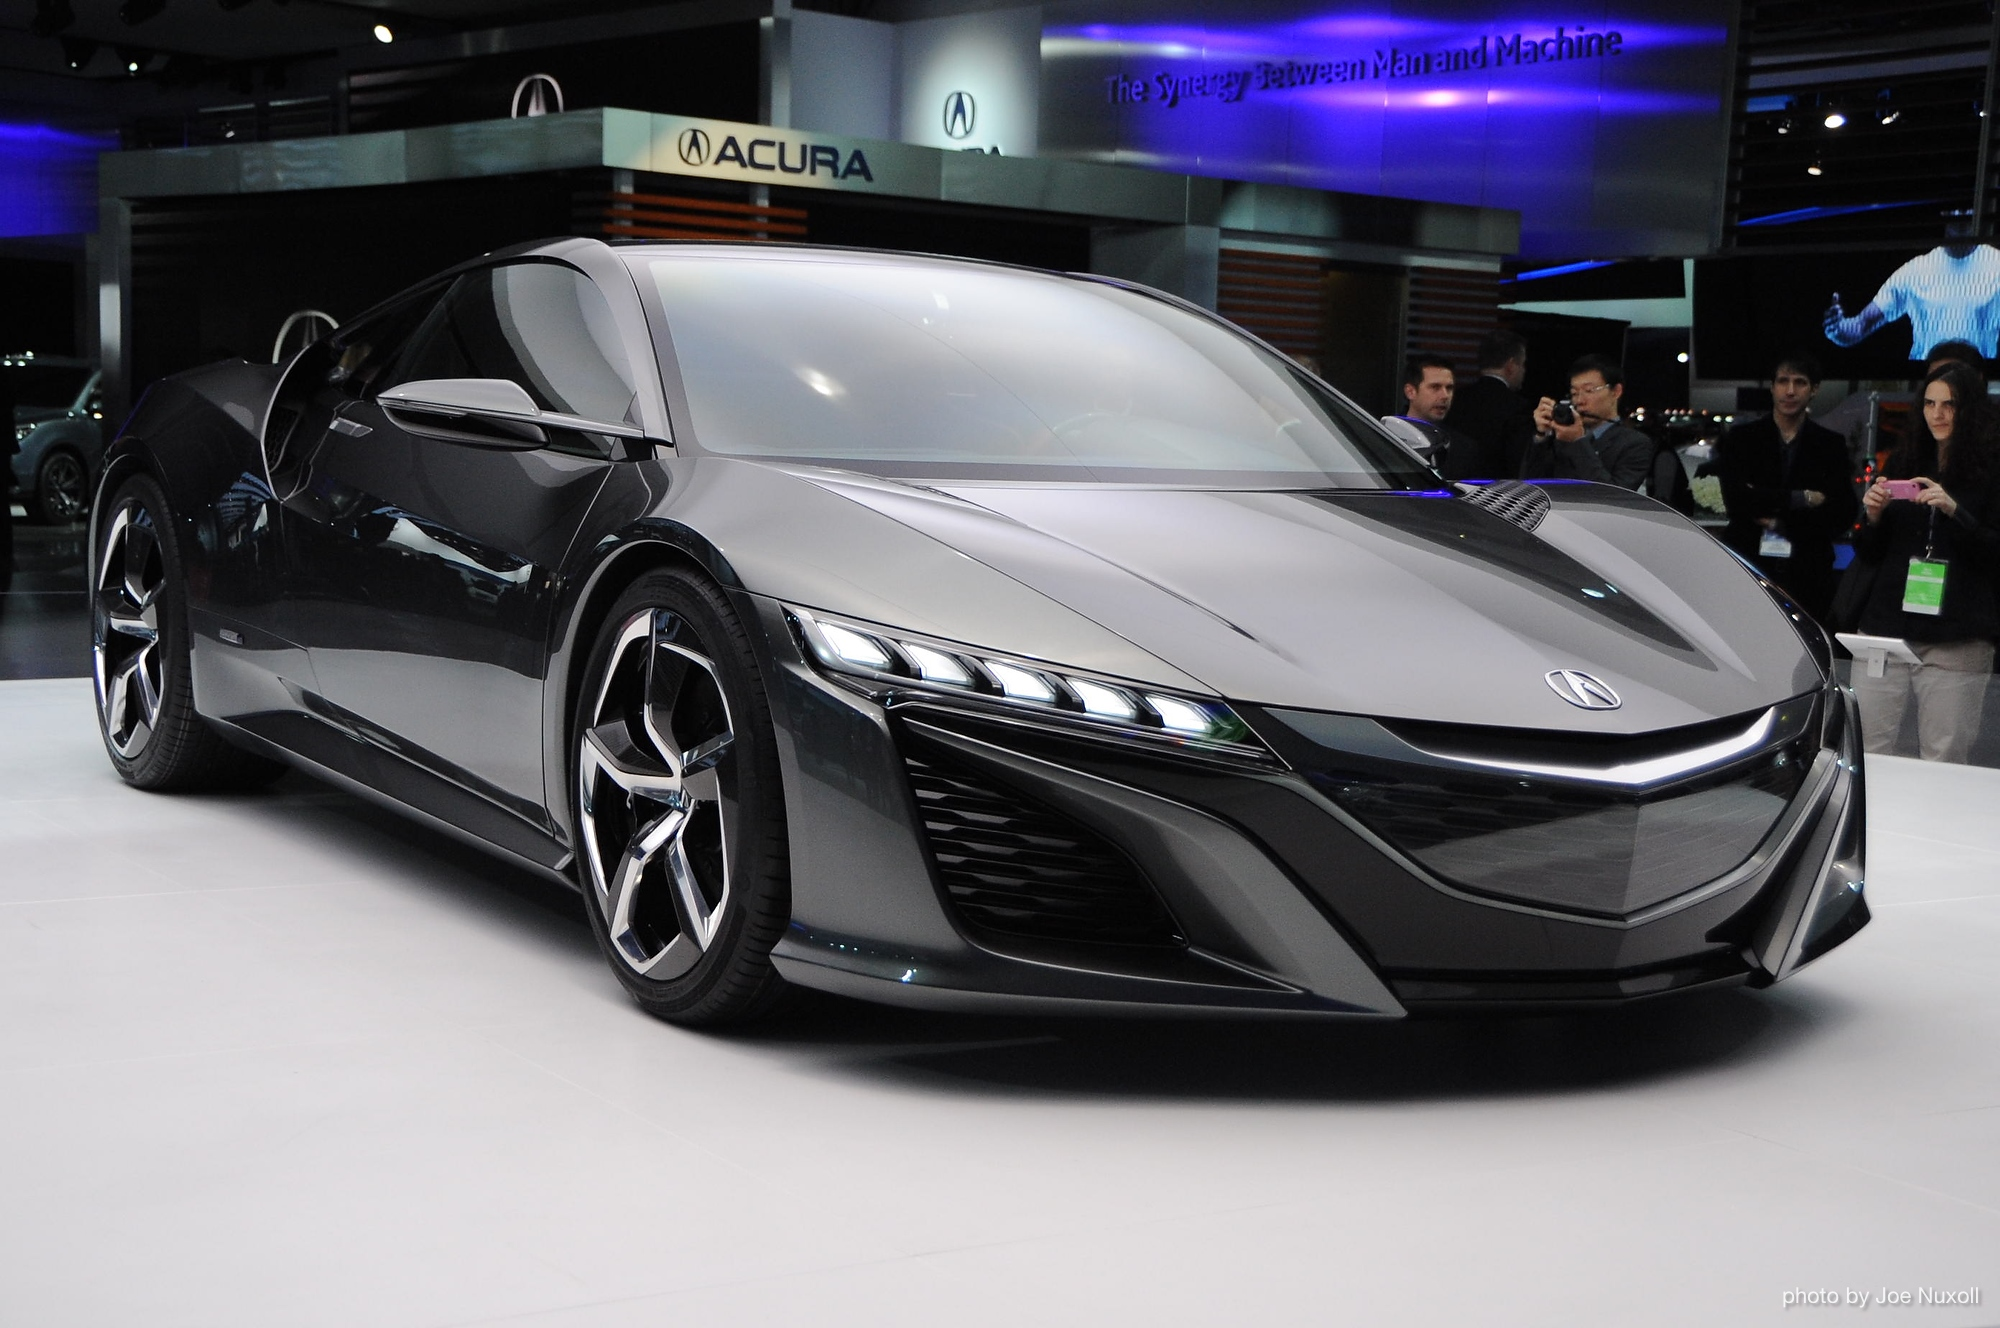 2014 acura nsx concept at the 2013 detroit auto show 100416115. Black Bedroom Furniture Sets. Home Design Ideas